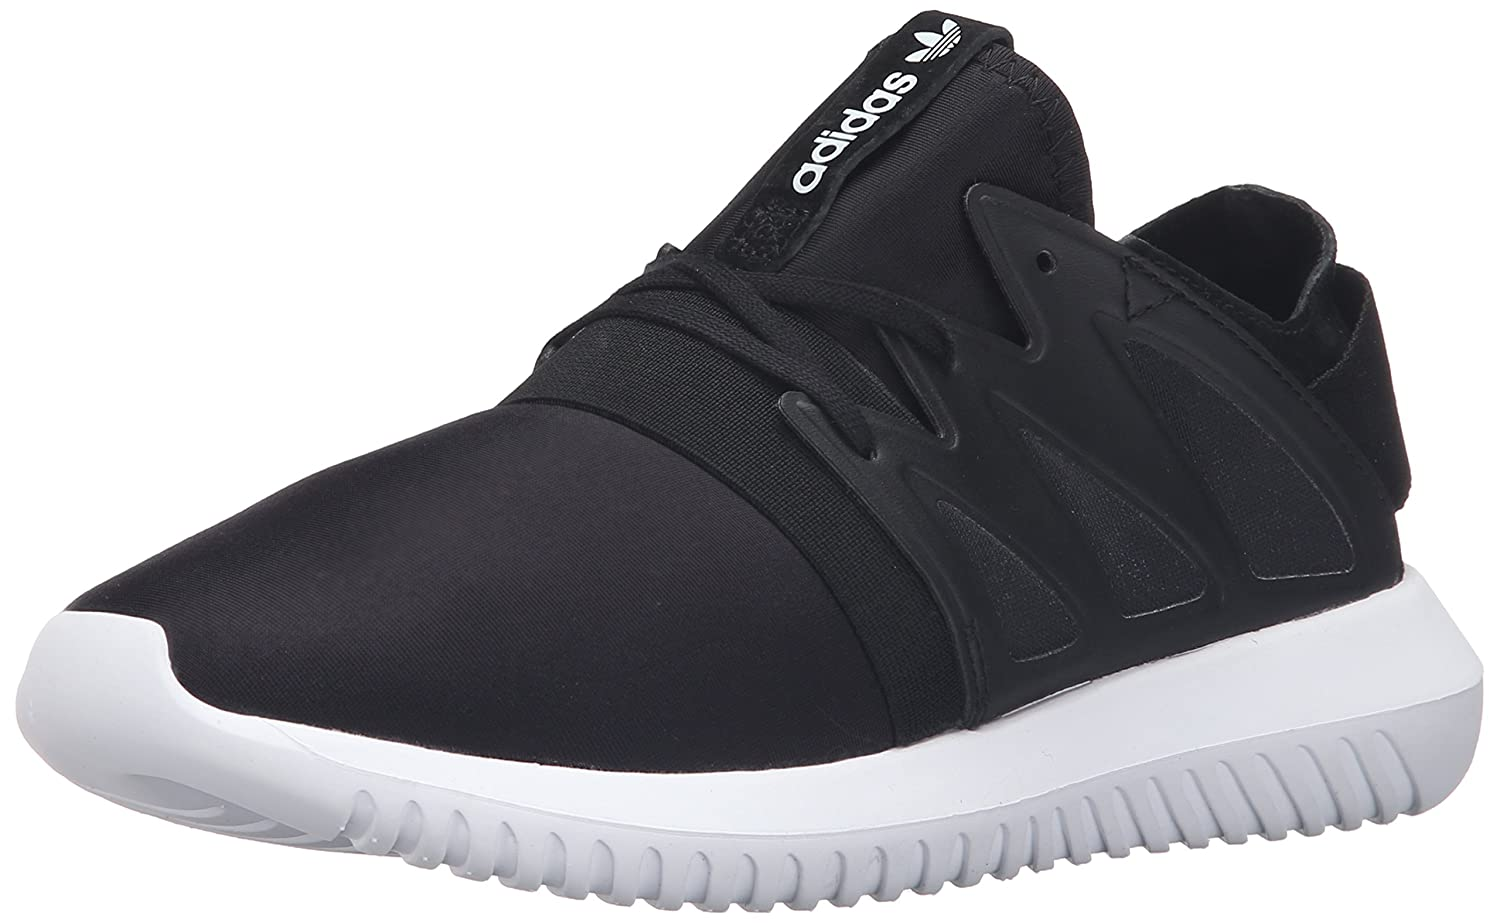 adidas Originals Women's Tubular Viral W Fashion Sneaker B01G01070K 10 M US|Black/Black/White